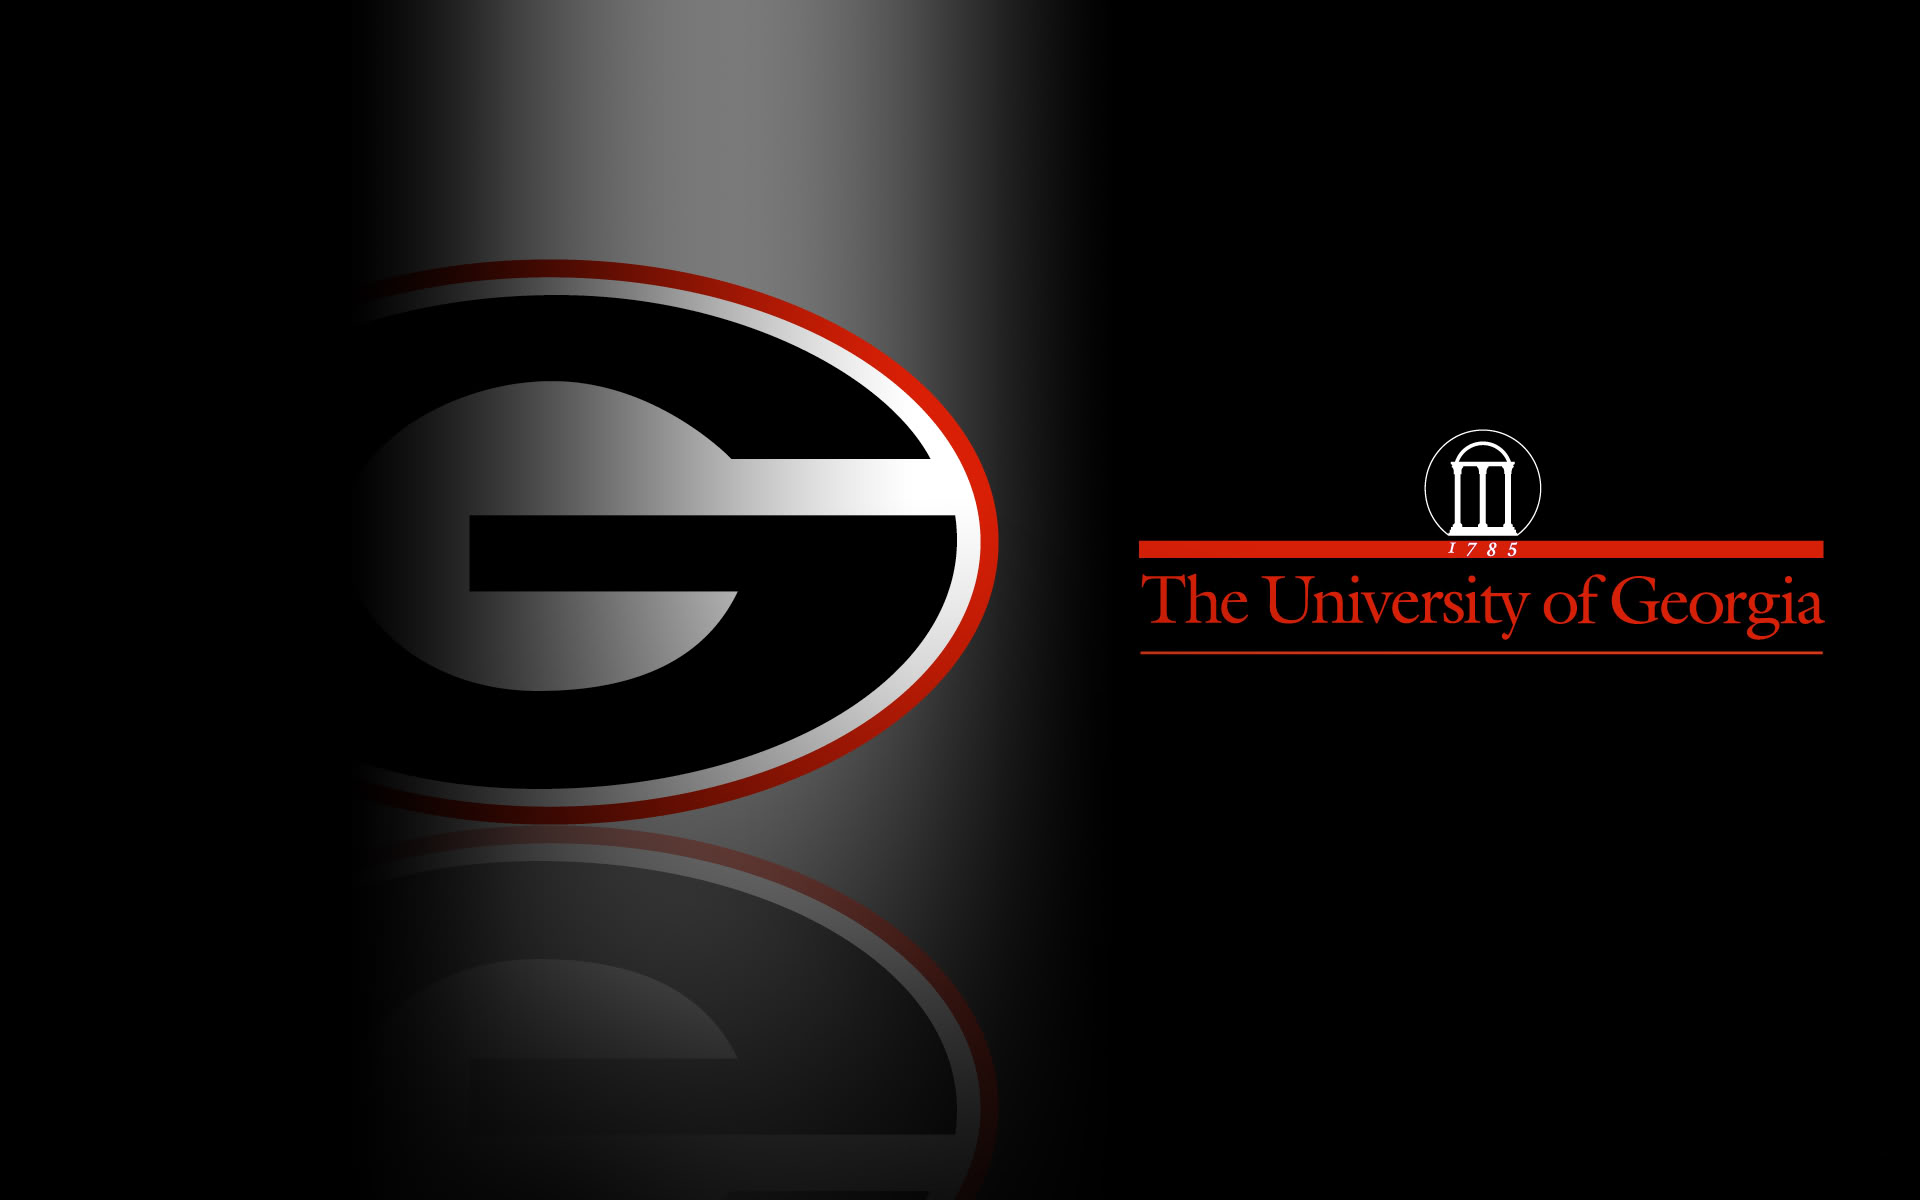 University of Georgia Desktop Wallpapers 1920x1200